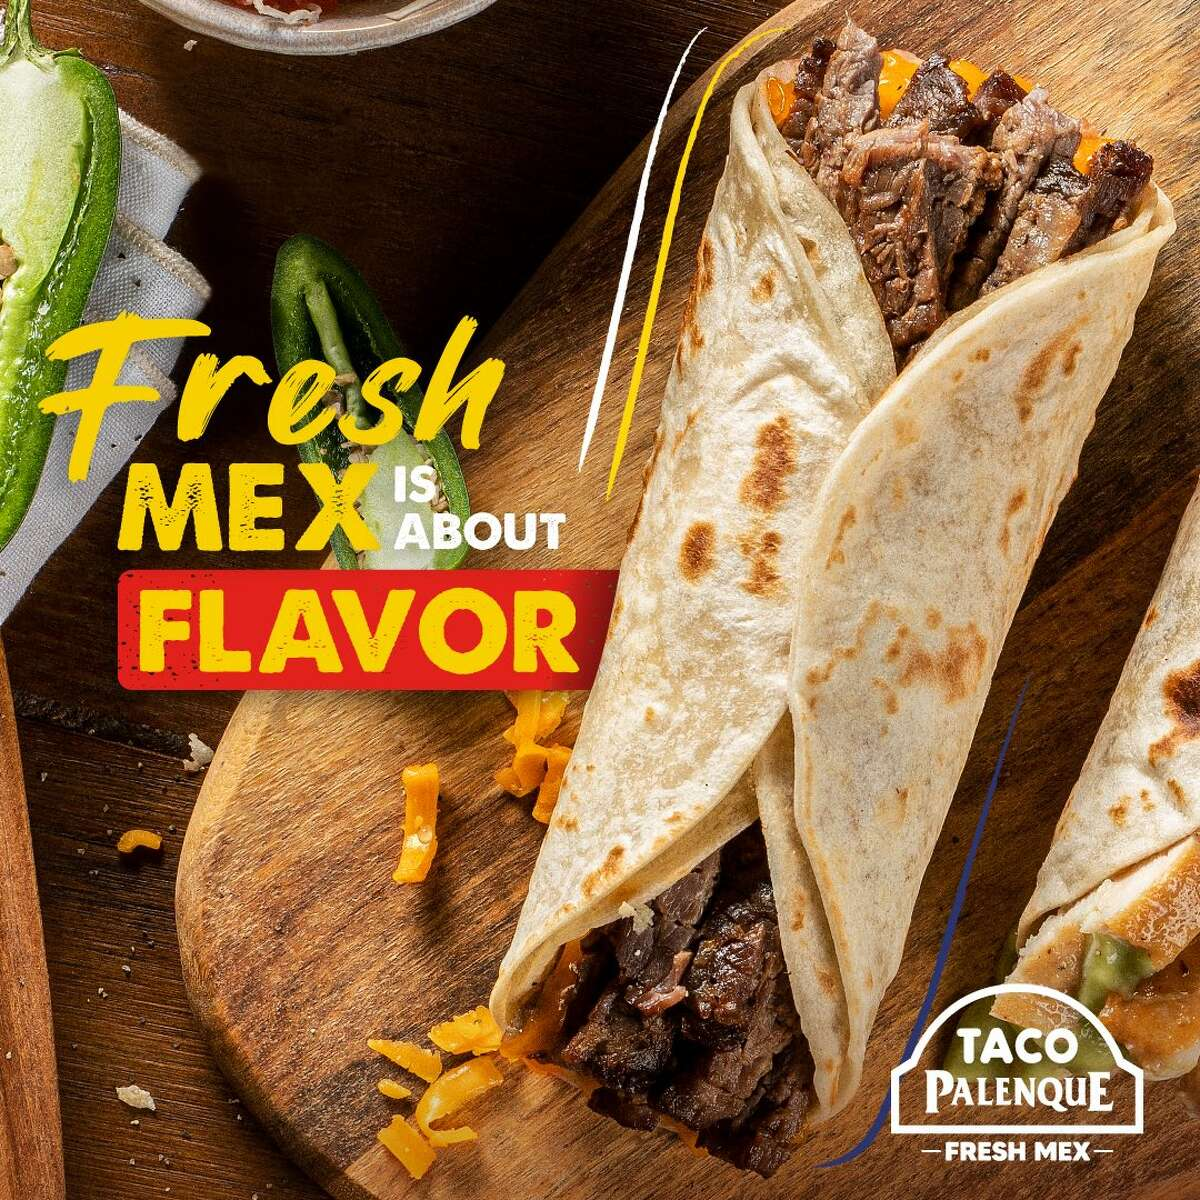 The Pirata from Taco Palenque is pictured in this press photo.